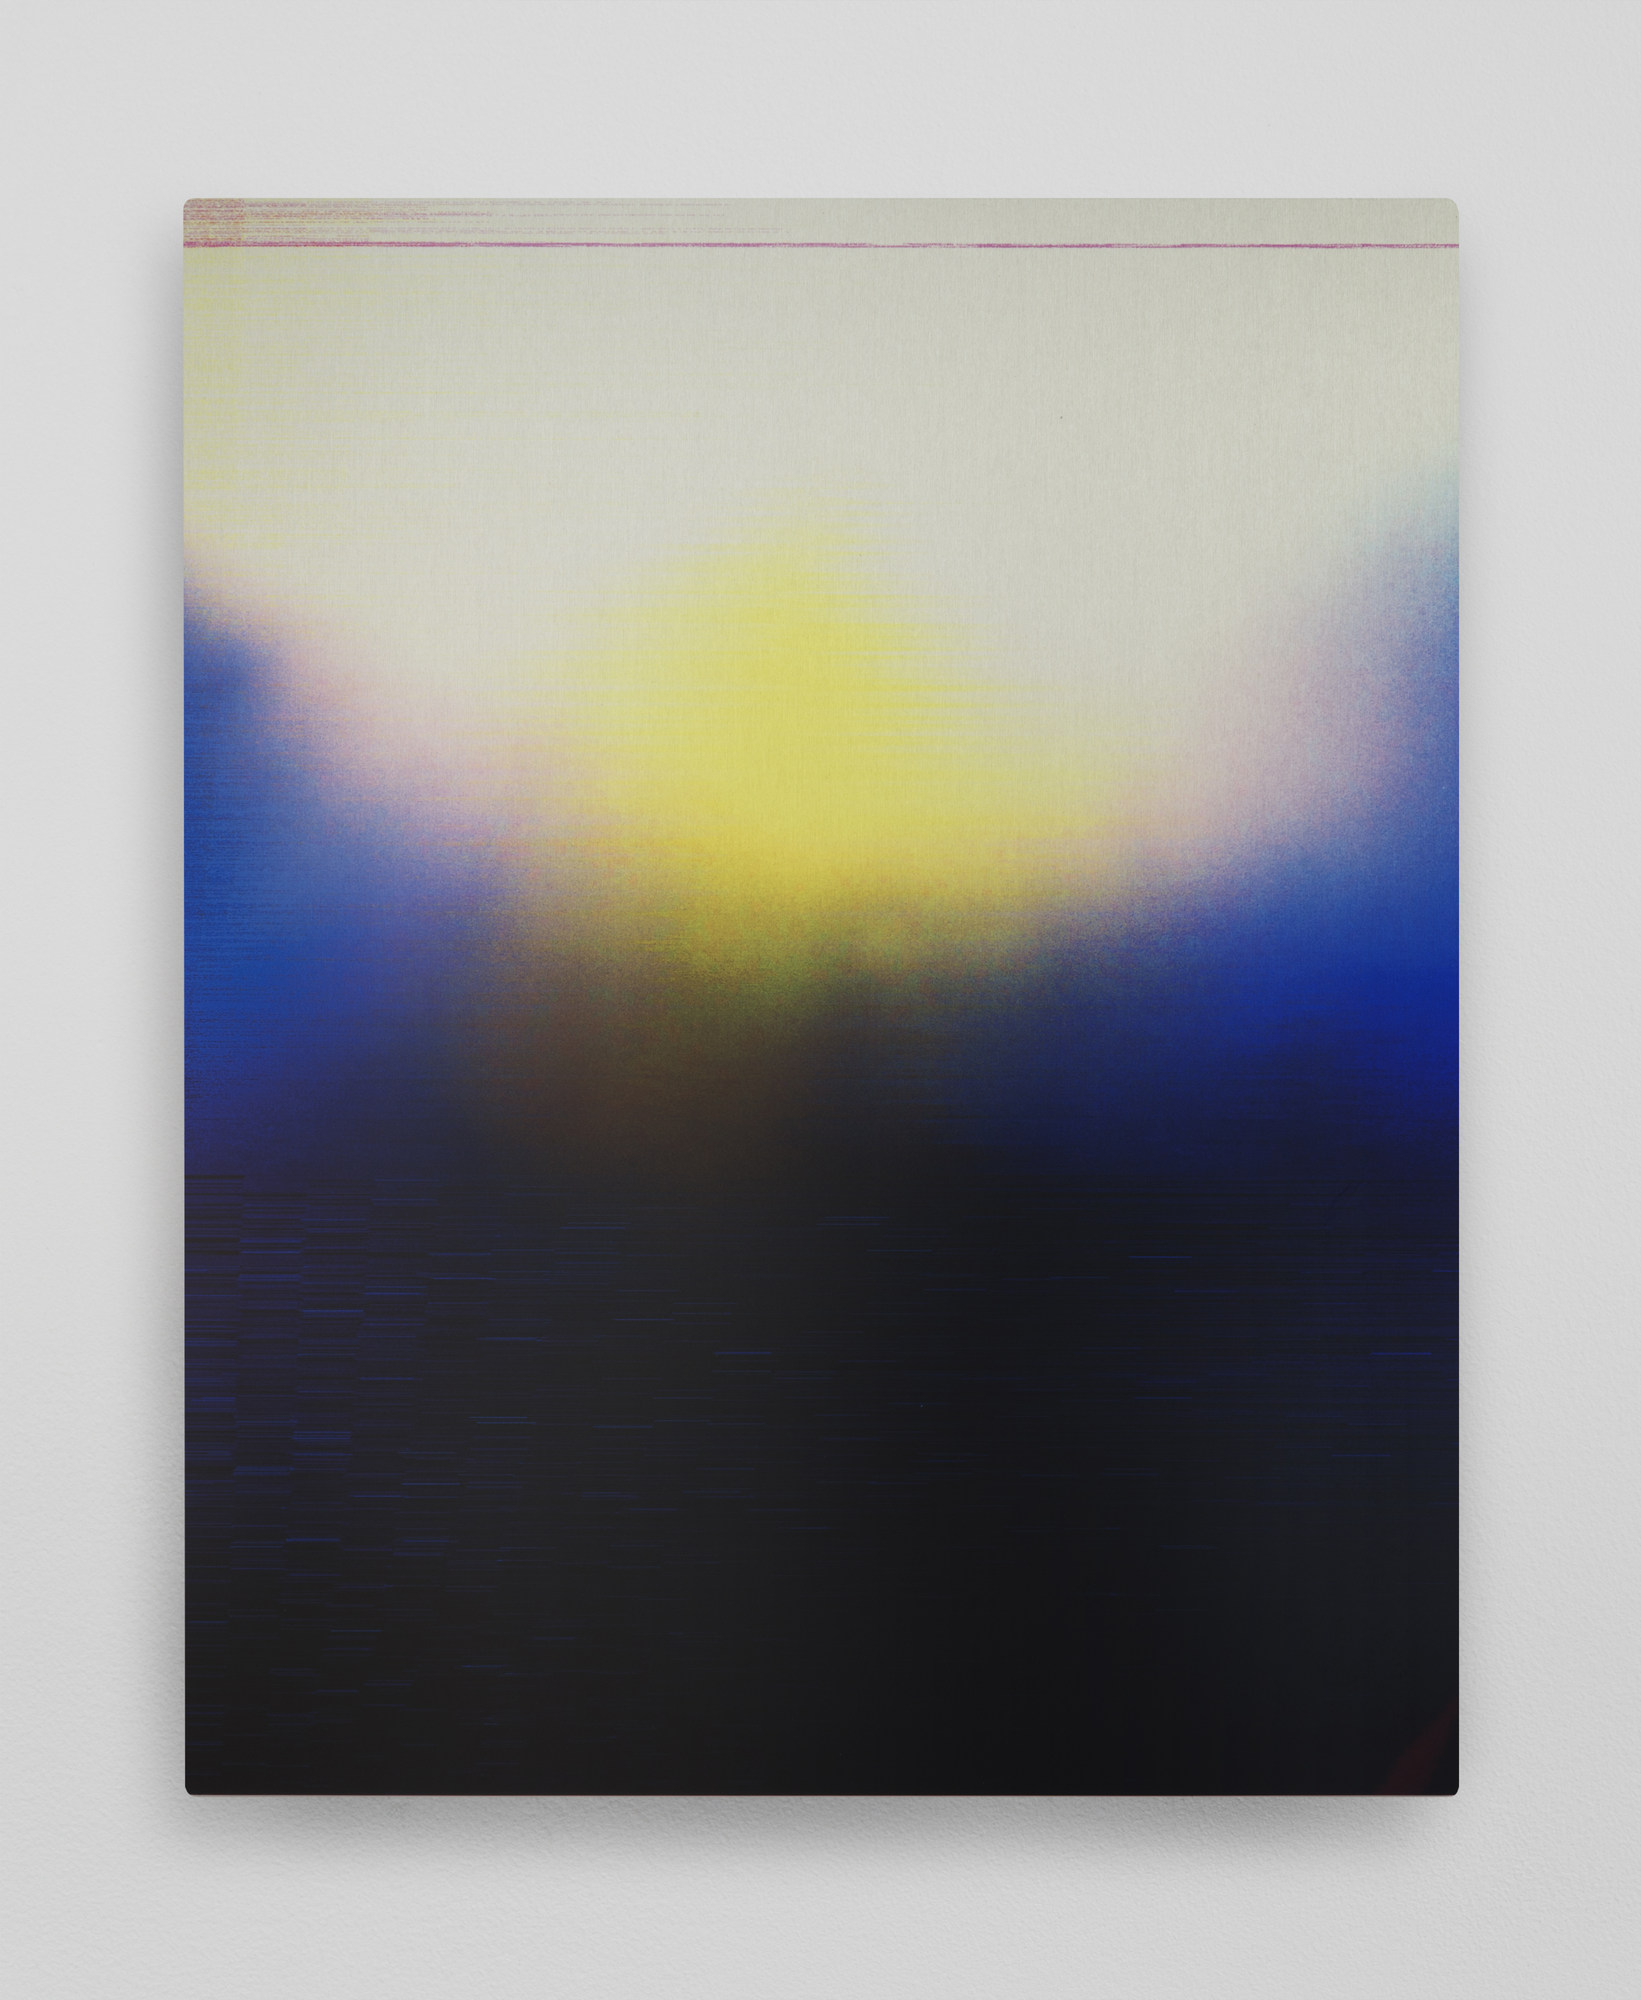 James Hoff, Skywiper No. 28, 2015